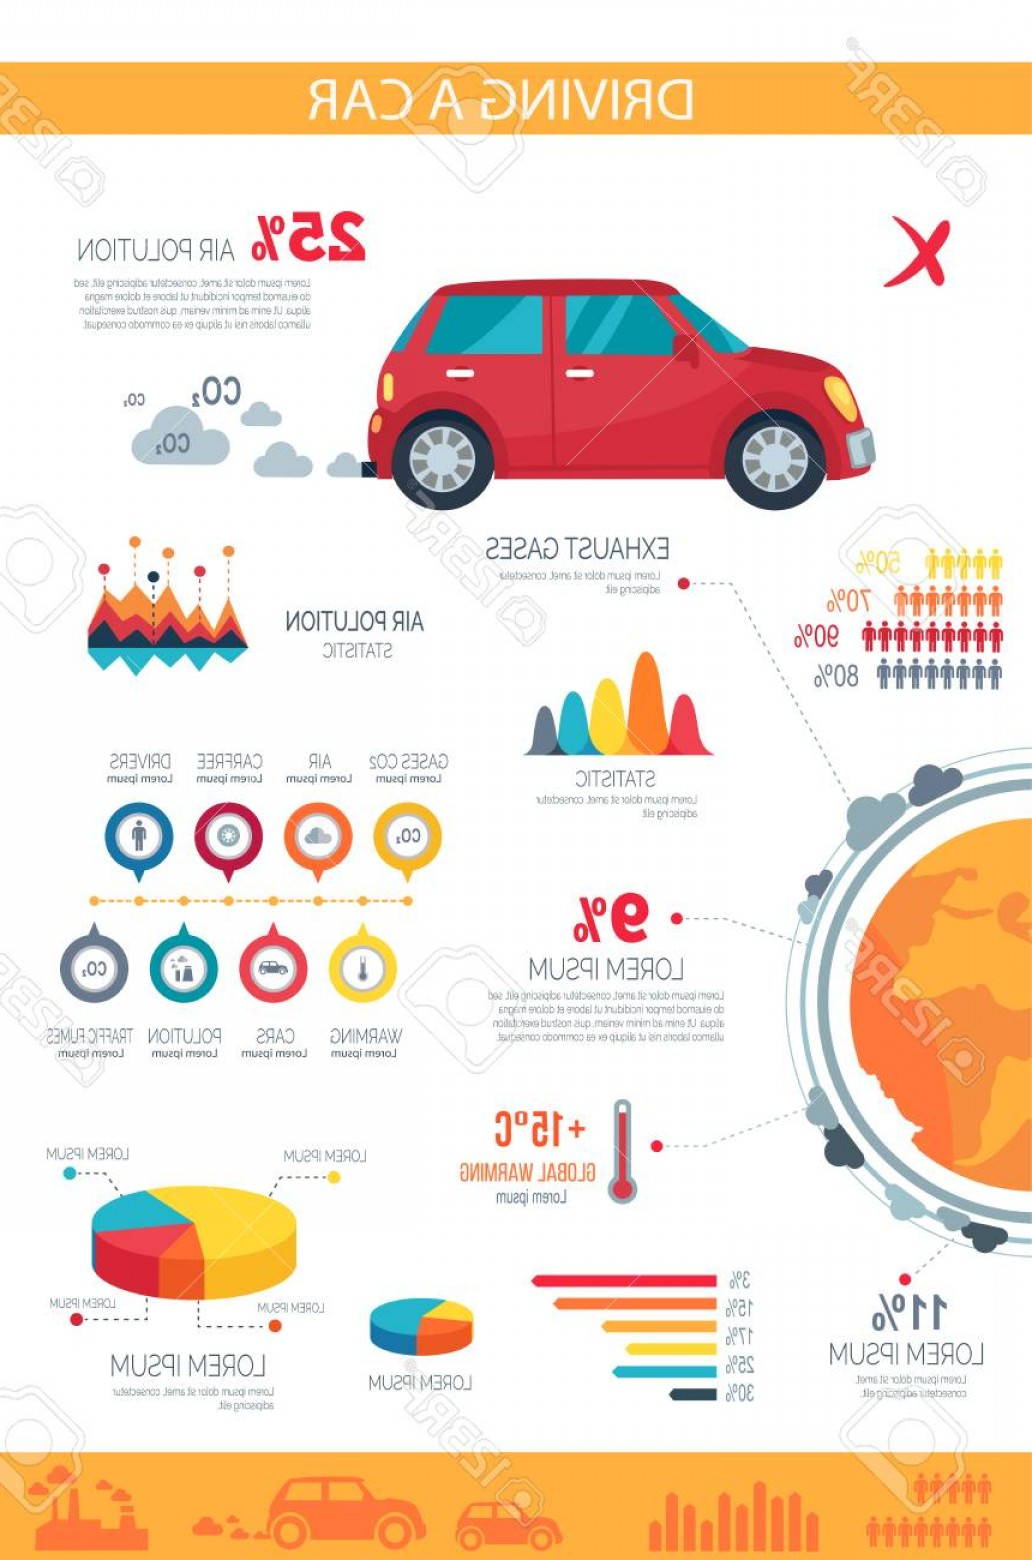 Vector Editors Disadvantages: Photostock Vector Driving A Car Disadvantages On Poster With Pie Charts Bar Graphs And Statistics That Compromise Vehi